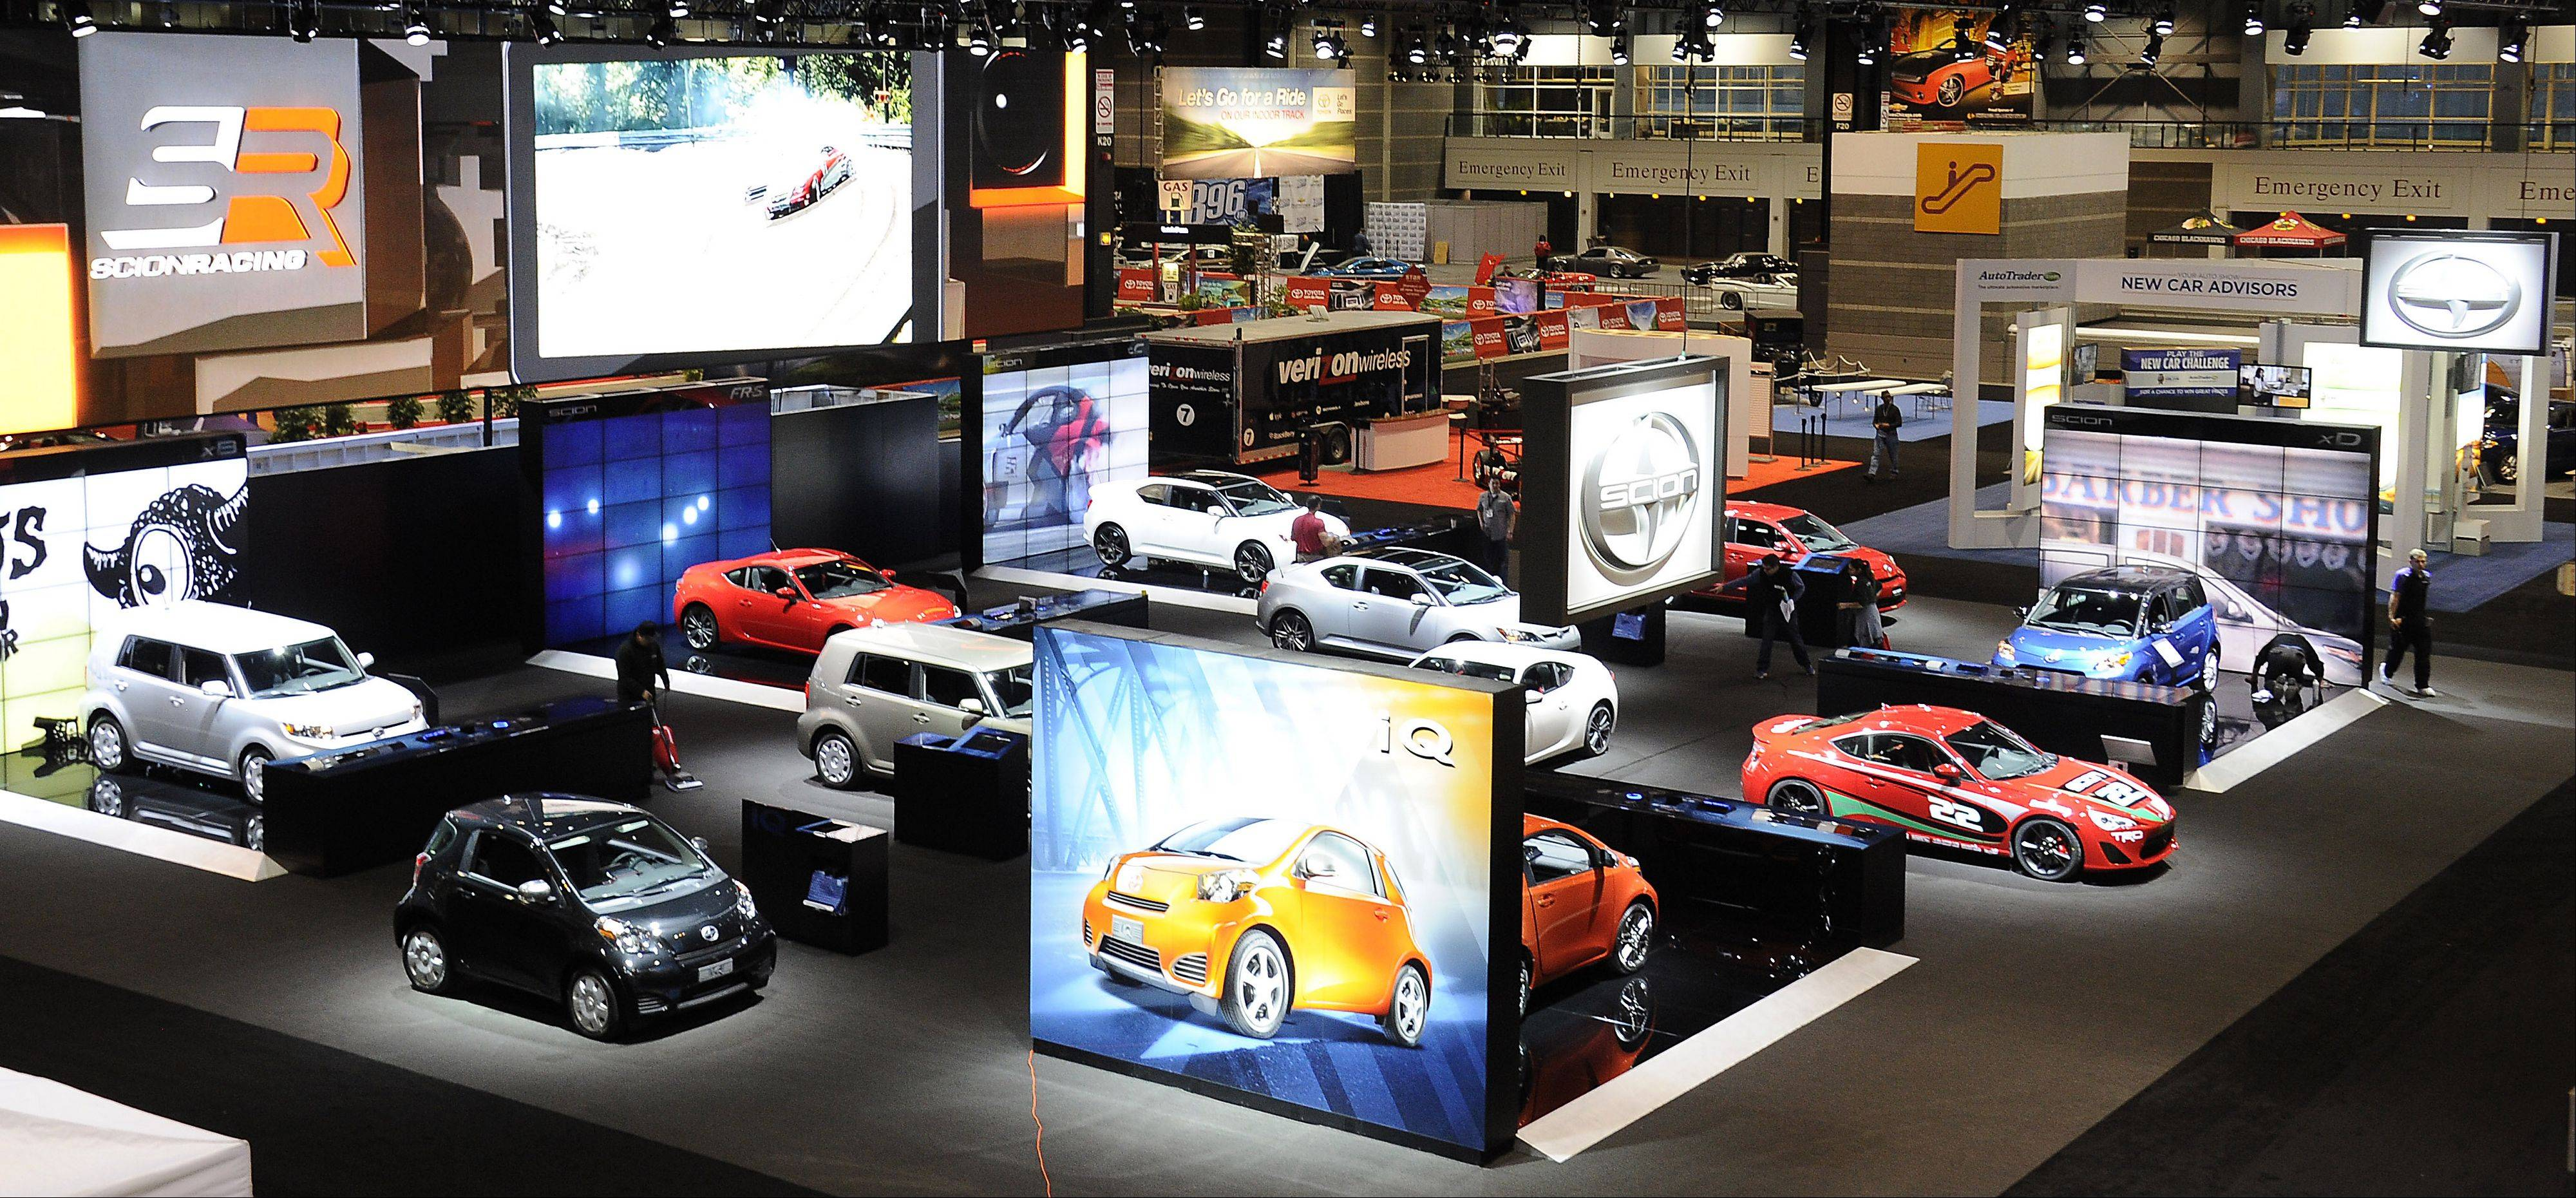 You can expect big crowds at the annual Chicago Auto Show that runs from Saturday through Feb. 17.